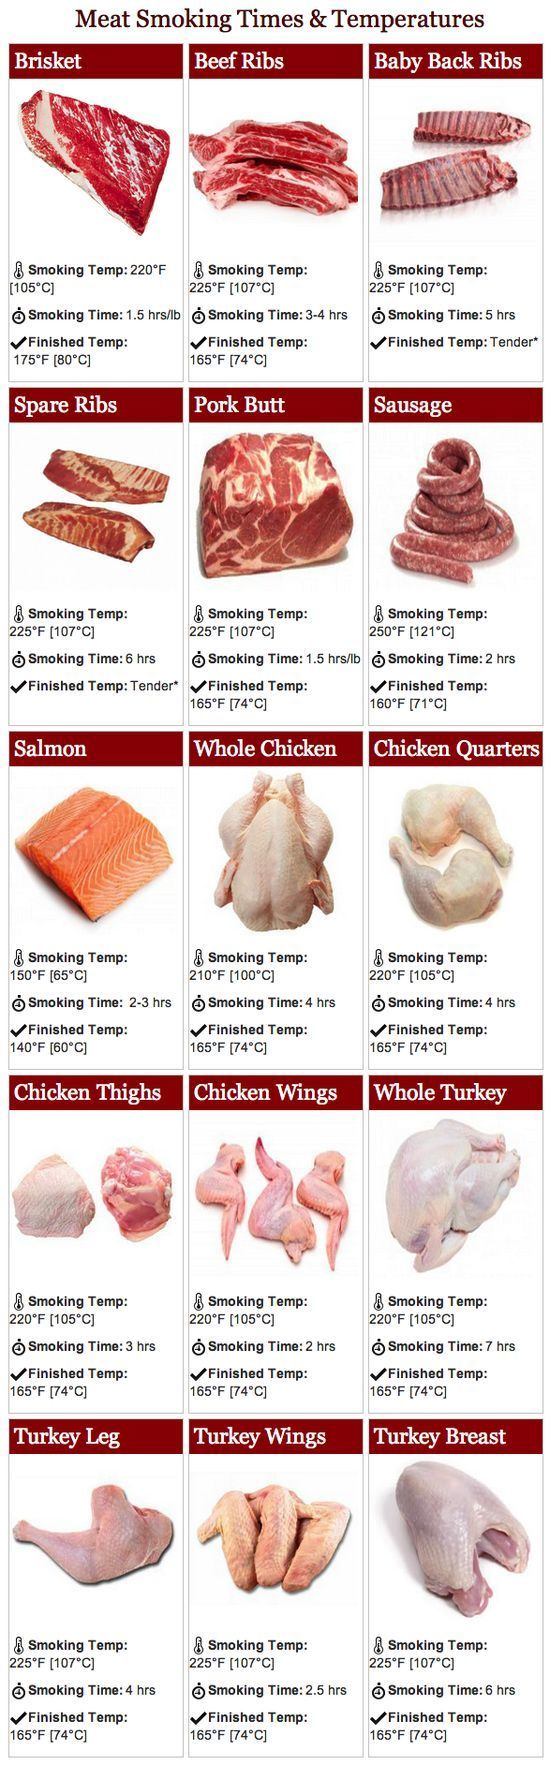 Cheat sheet on meat smoking times and temperatures from Bradley Smoker! Maybe one day I will attempt this on someones smoker.